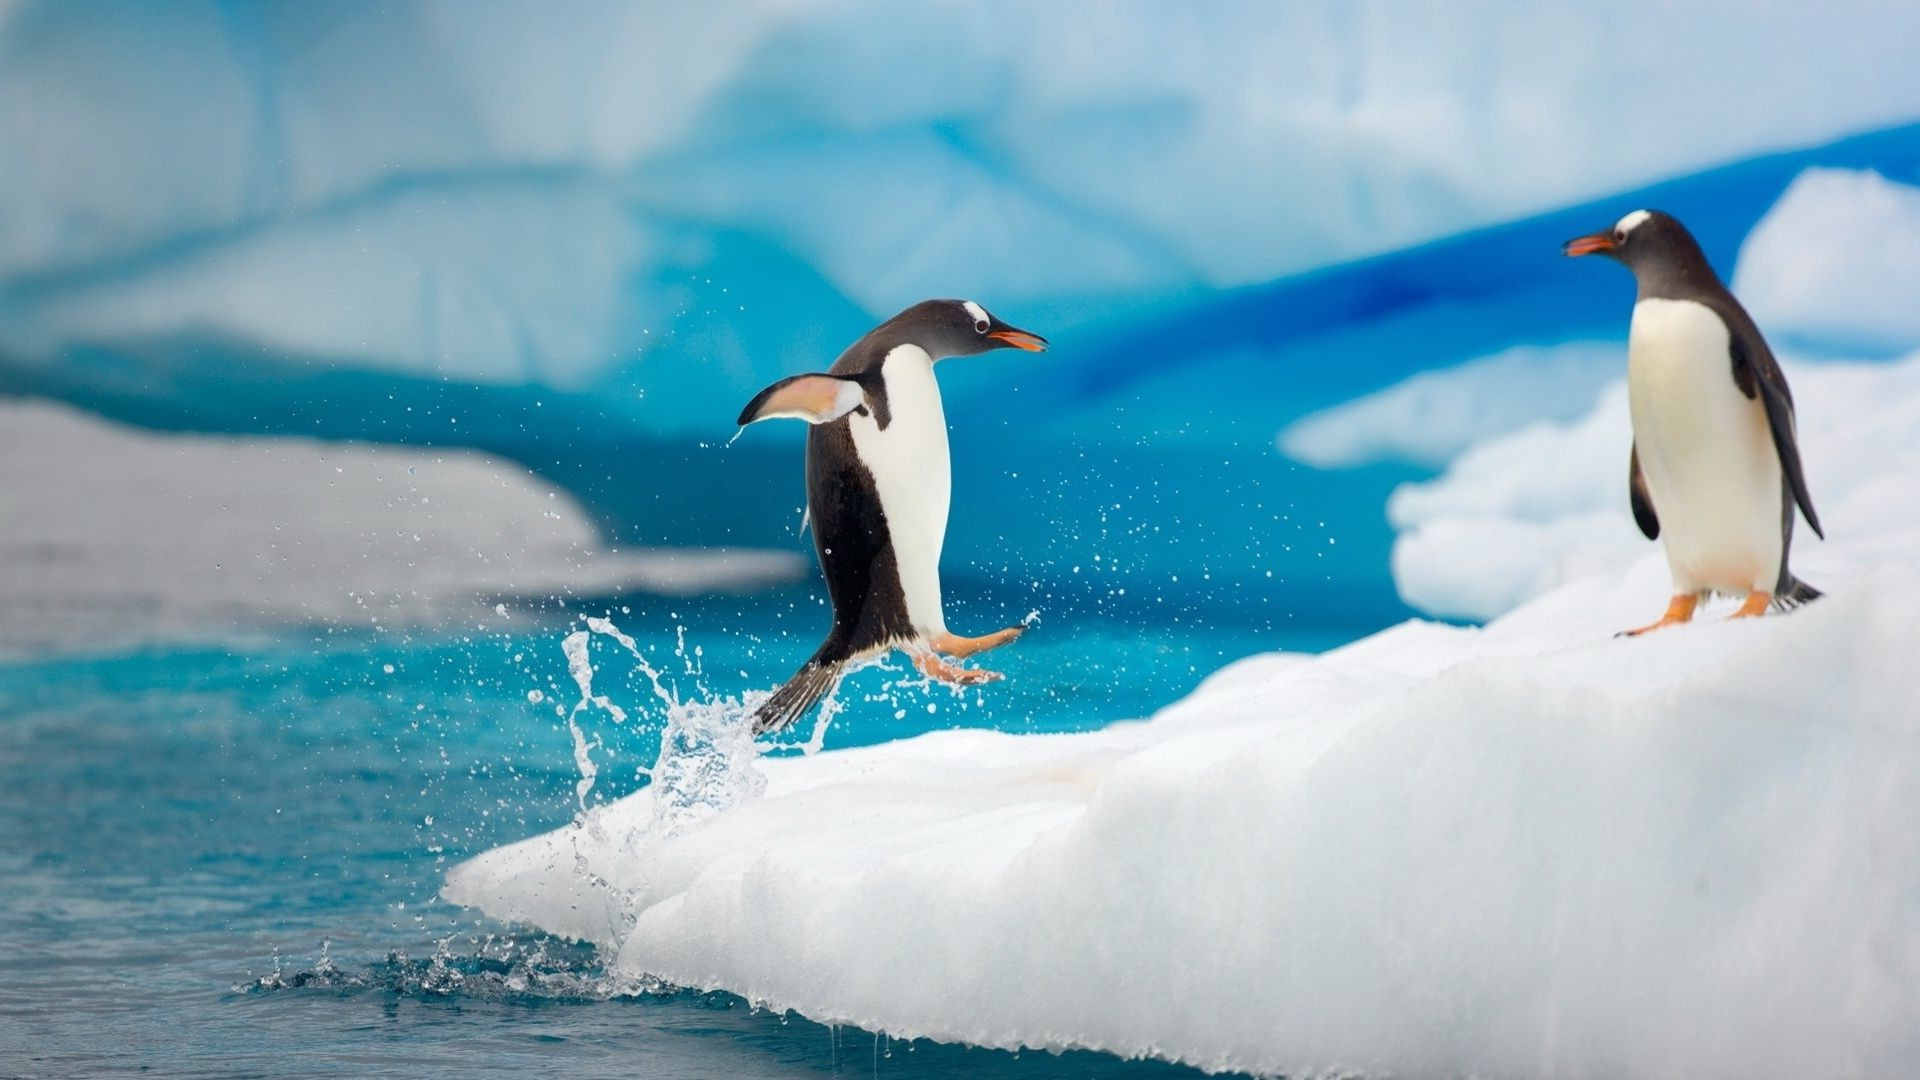 penguin jumping out of water on the ice floe